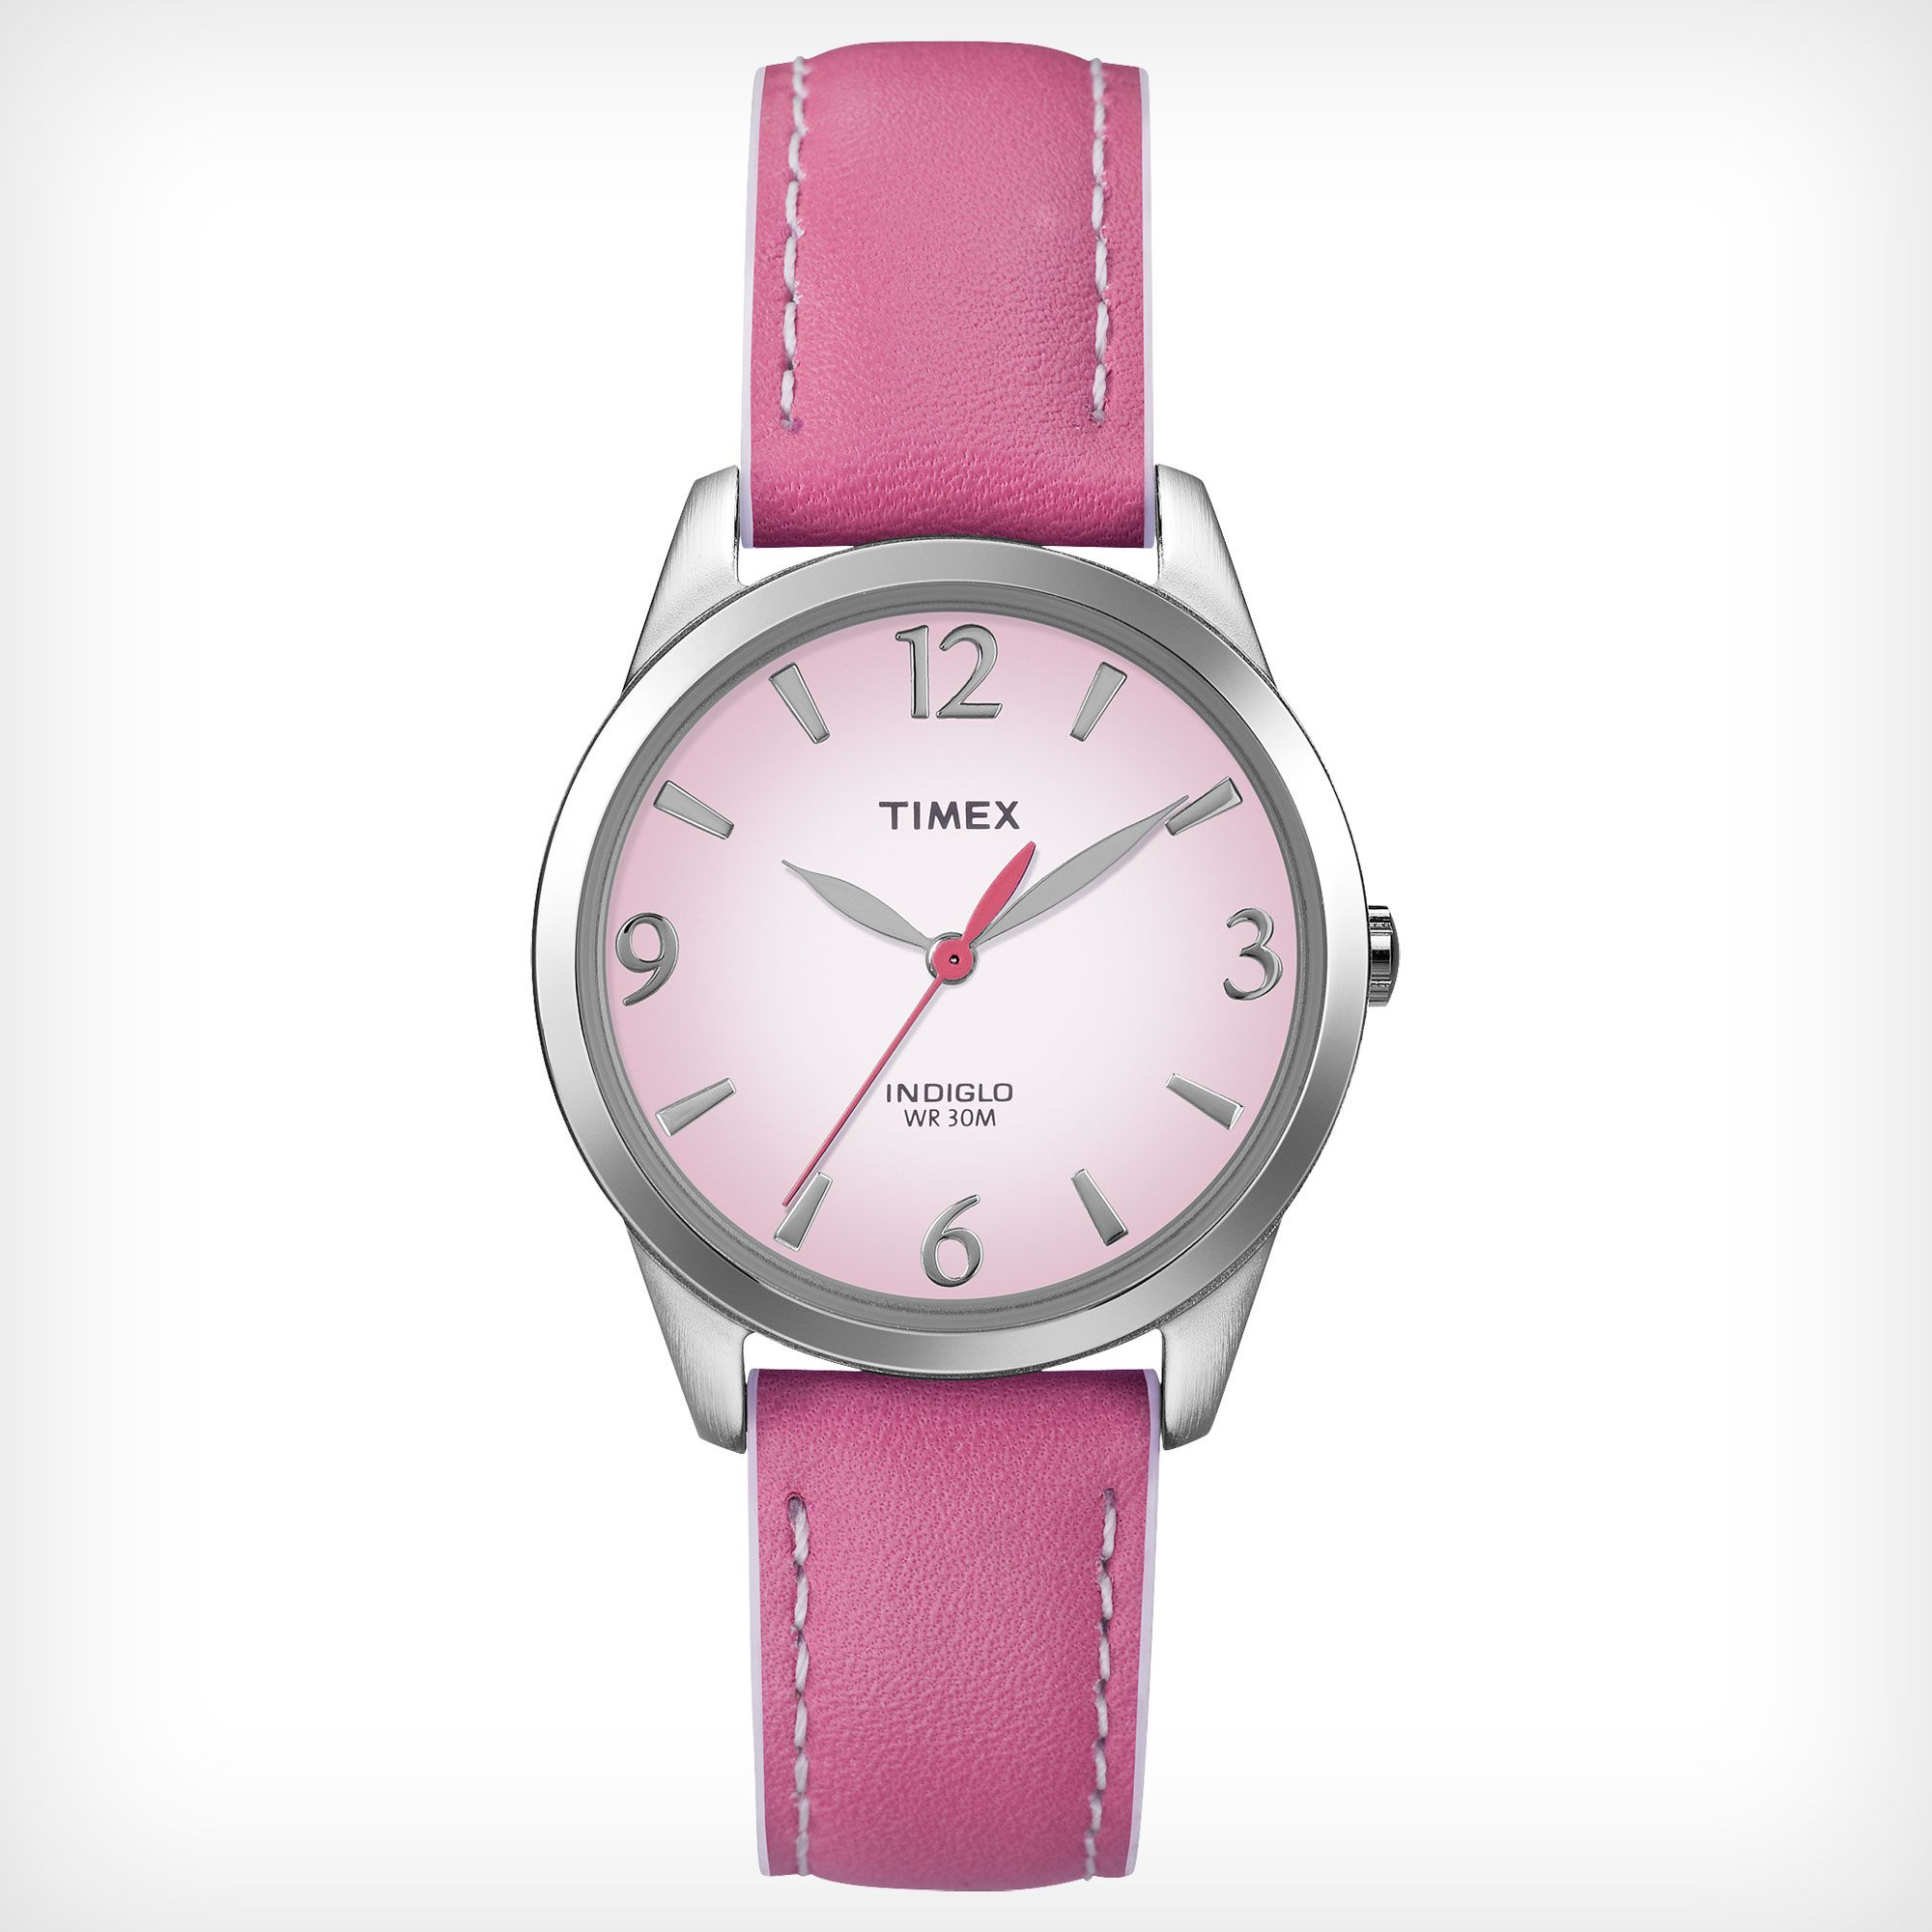 Timex Weekender Strap Timex Timex Pink Leather Leather Straps